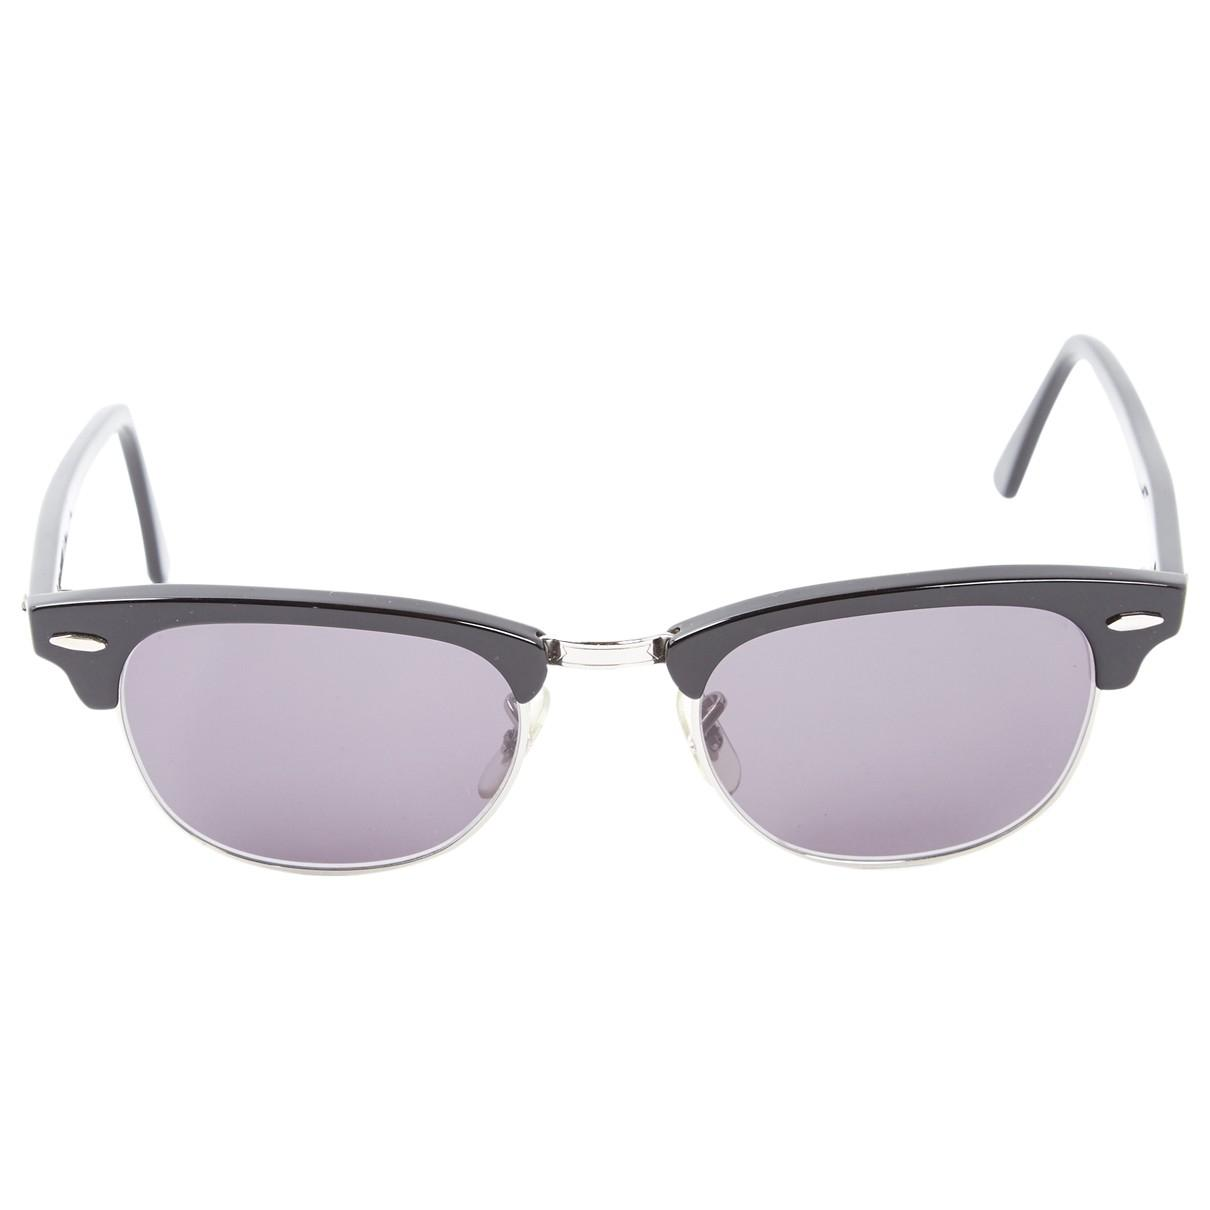 0acf1765abe3 Lyst - Ray-Ban Pre-owned Black Plastic Sunglasses in Black